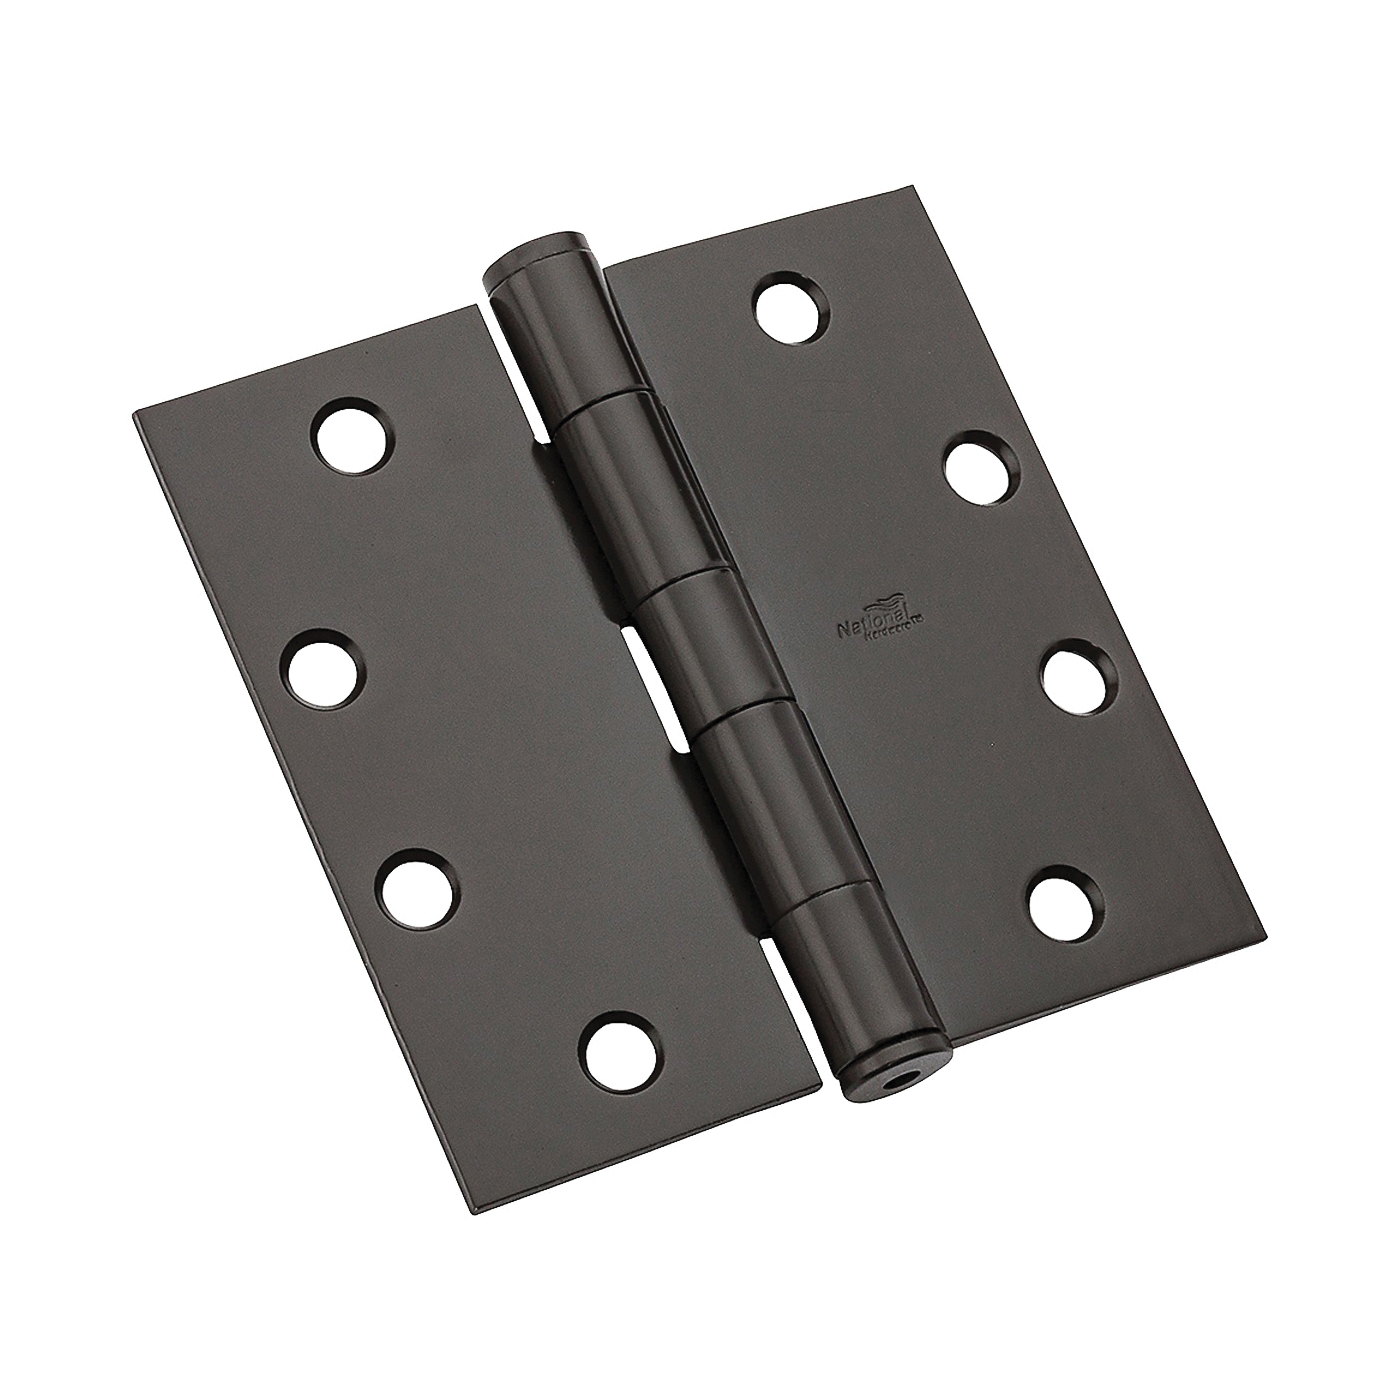 Picture of National Hardware DPB179 Series N236-018 Template Hinge, 4-1/2 in H Frame Leaf, 1.3875 in Thick Frame Leaf, Steel